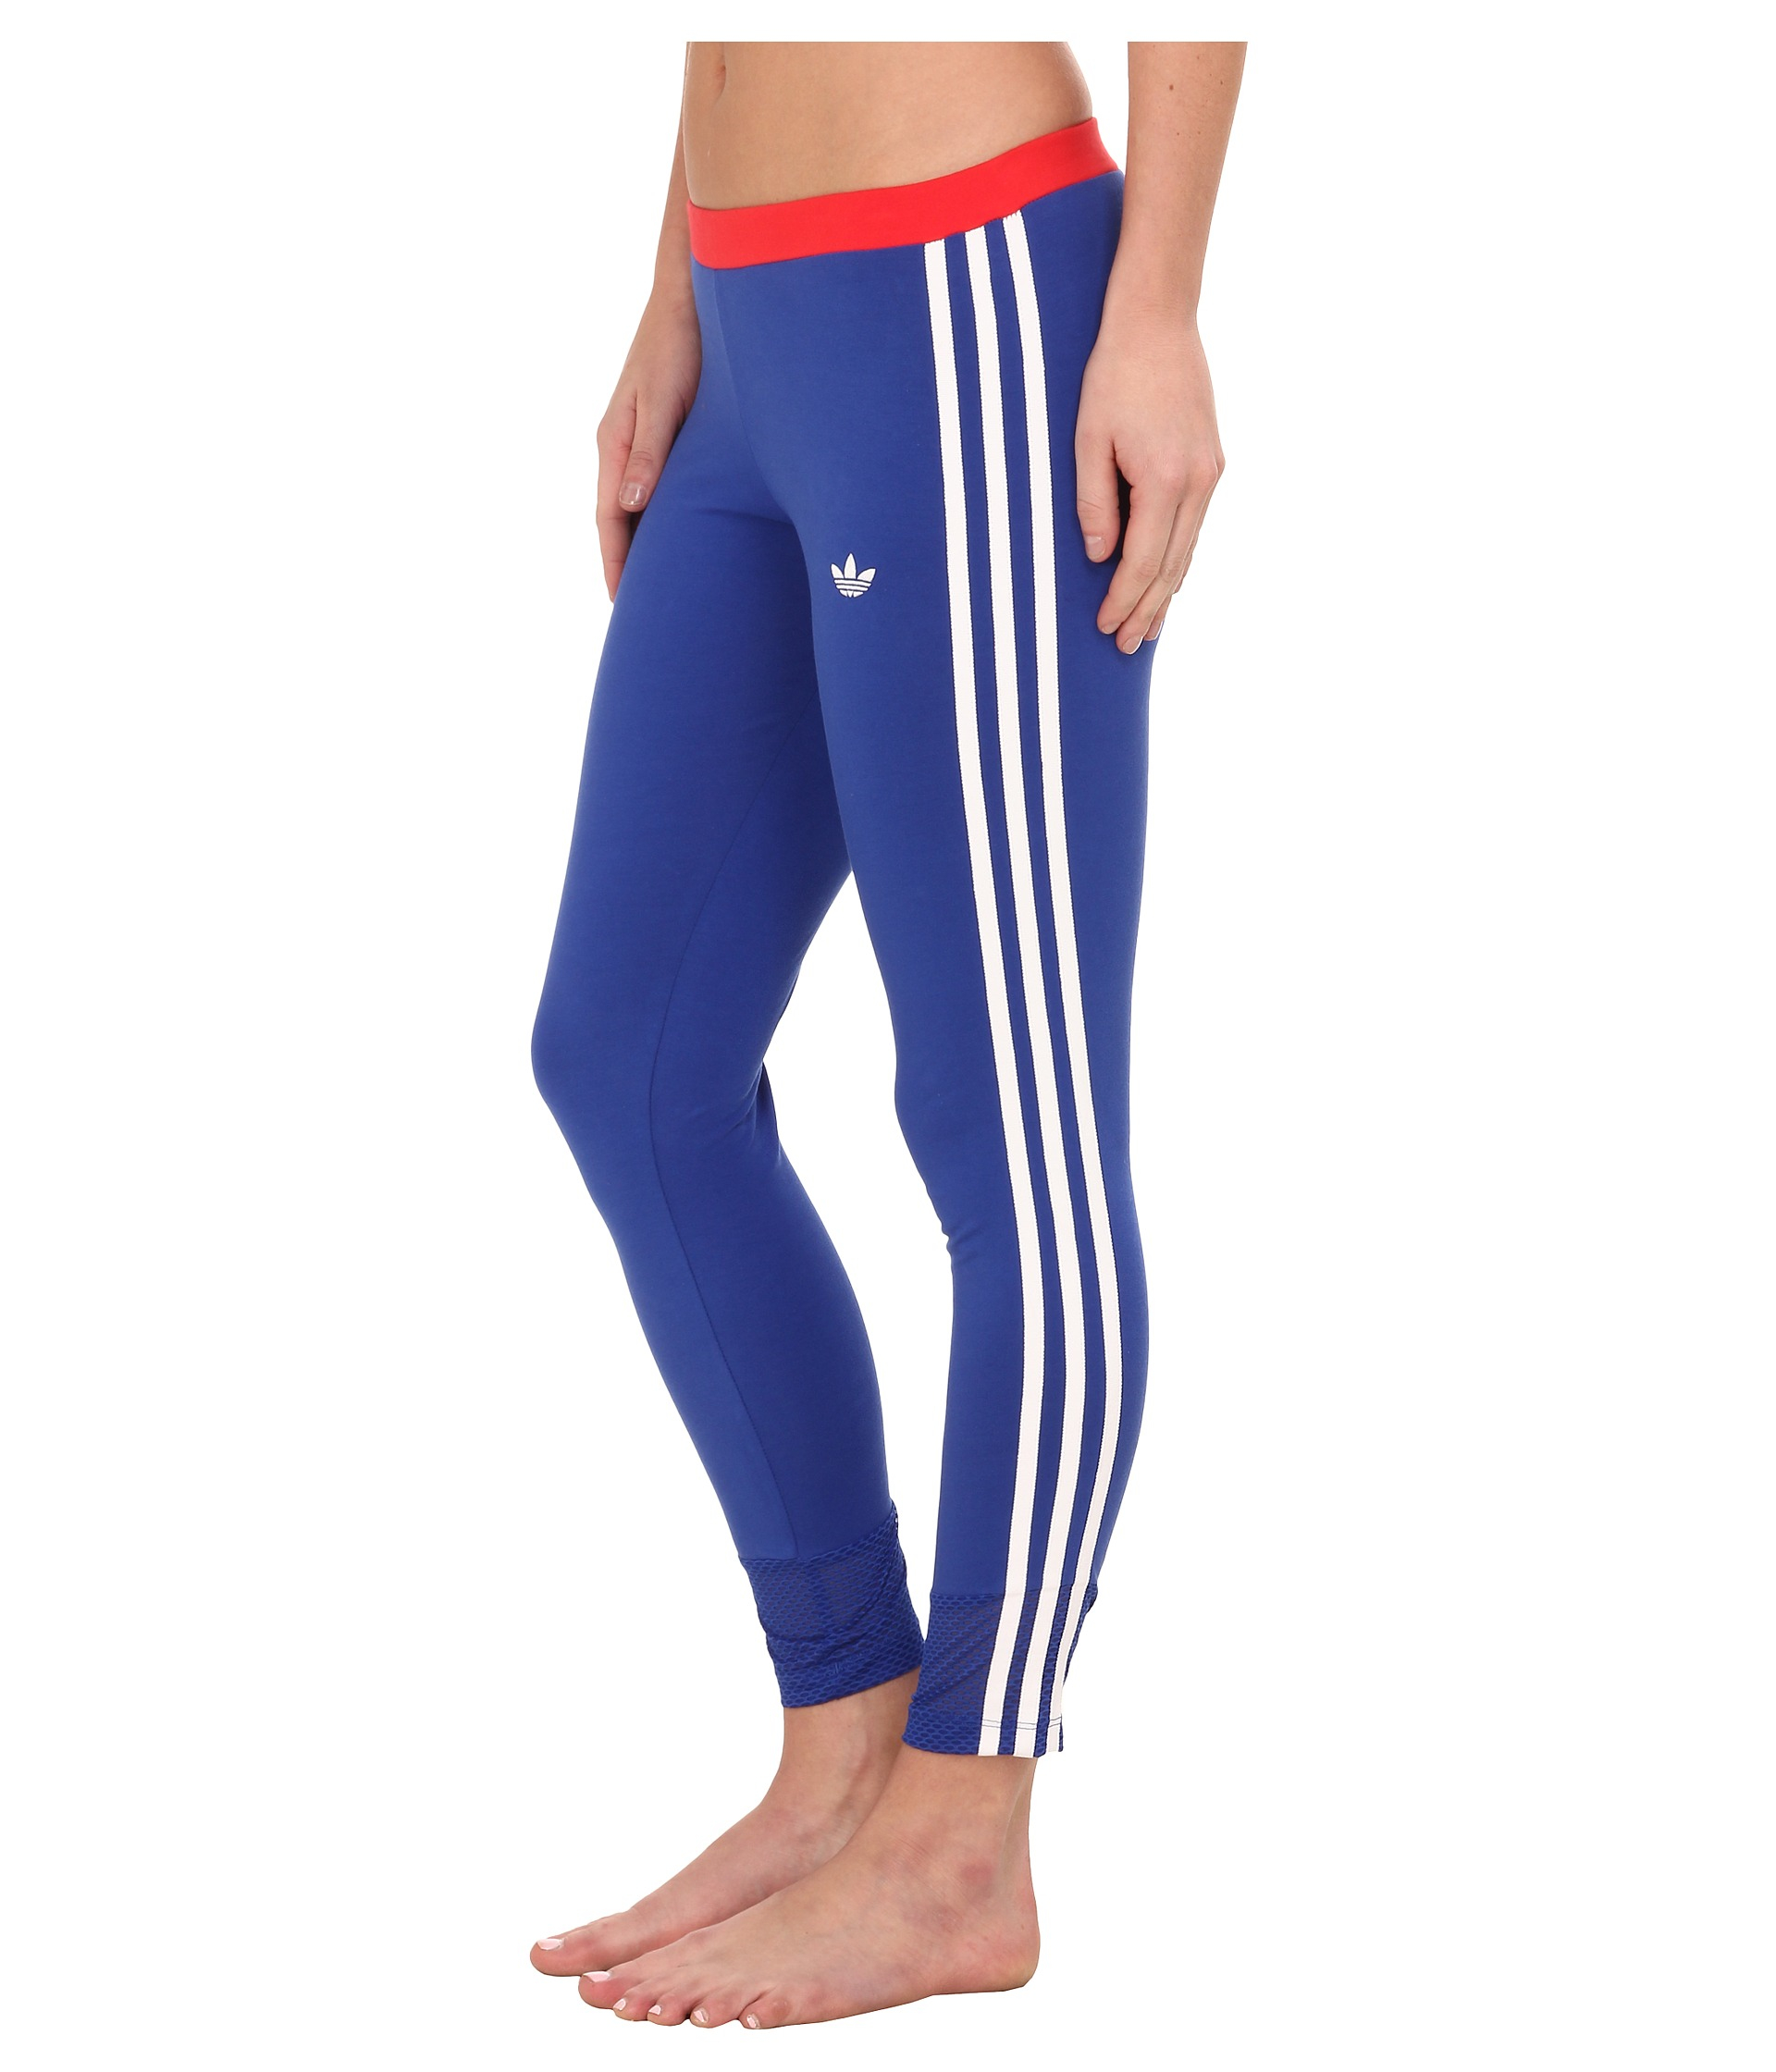 Adidas originals La Color Block 3-stipes Leggings in Blue | Lyst